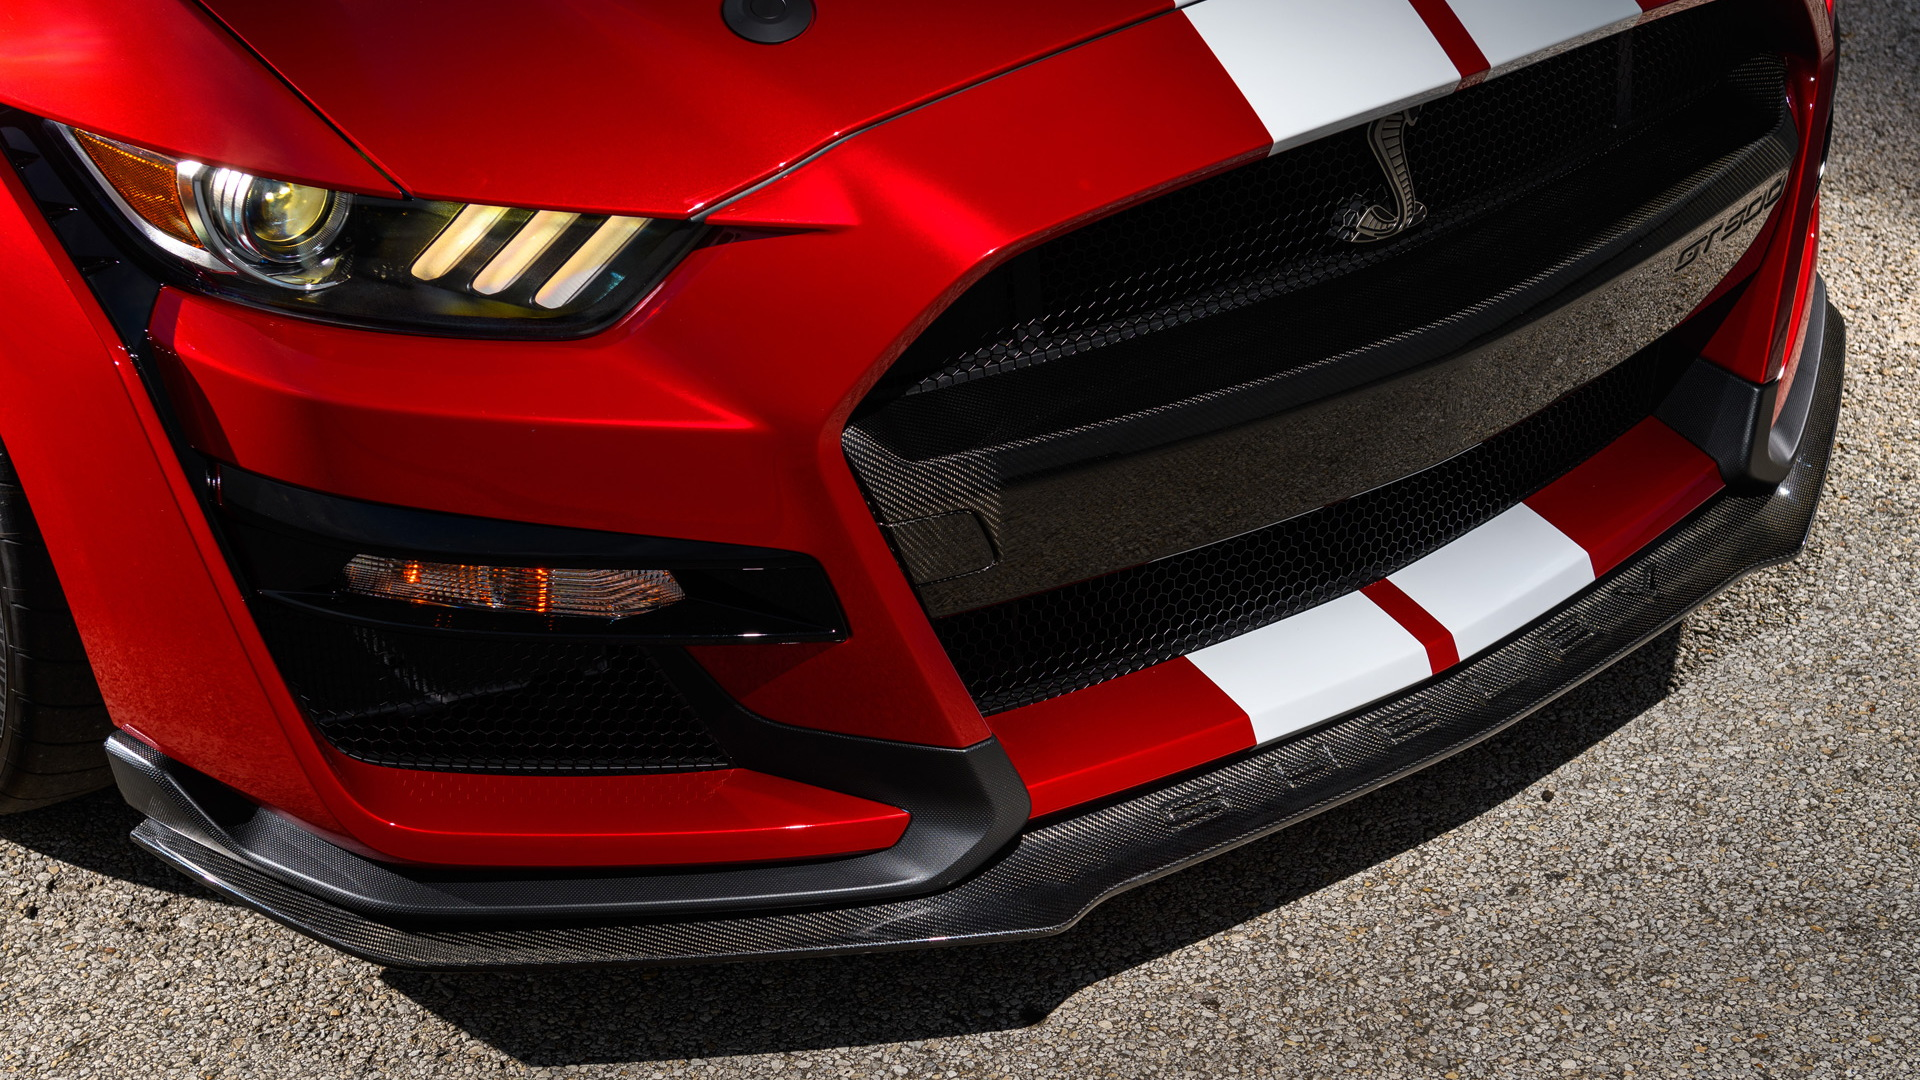 Ford Mustang GT500 carbon-fiber front splitter and grille insert from Ford Performance